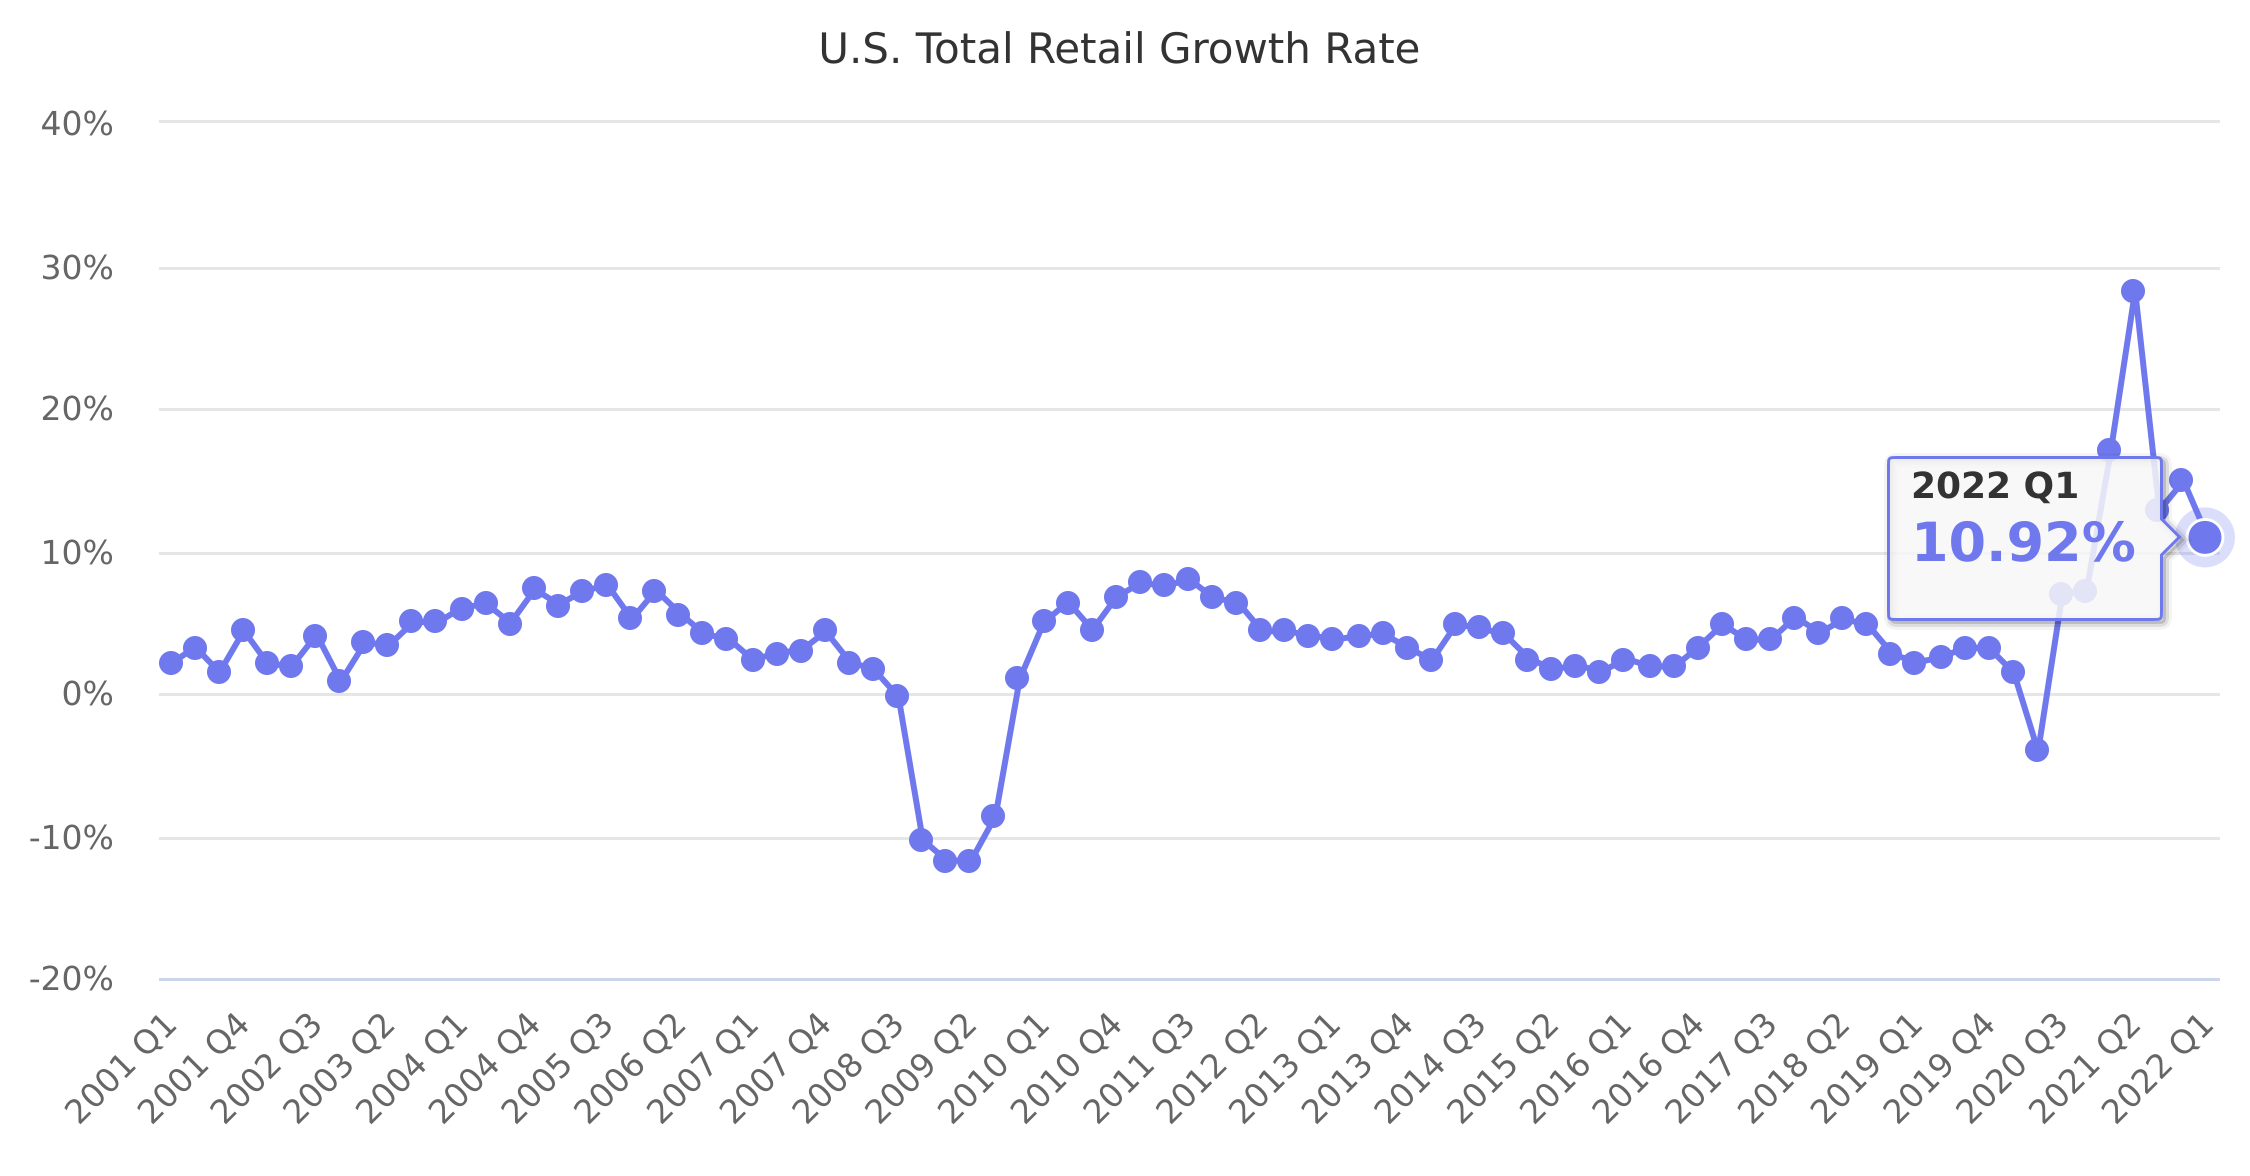 U.S. Total Retail Growth Rate 2001-2020